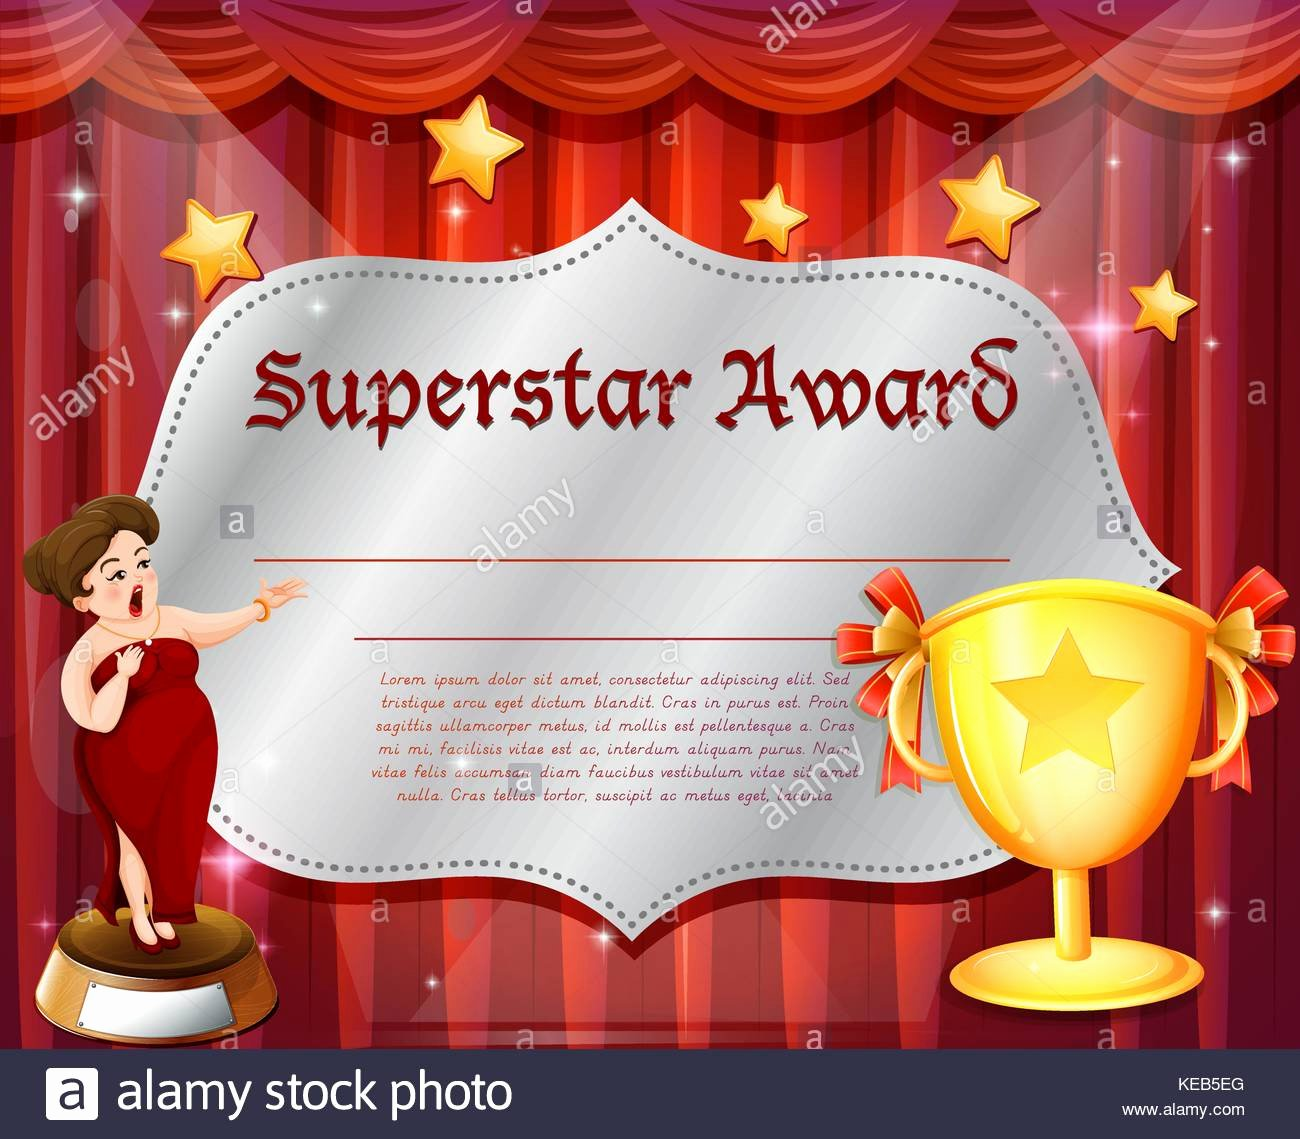 Film Festival Award Certificate Template Inspirational Award Curtain Stock S & Award Curtain Stock